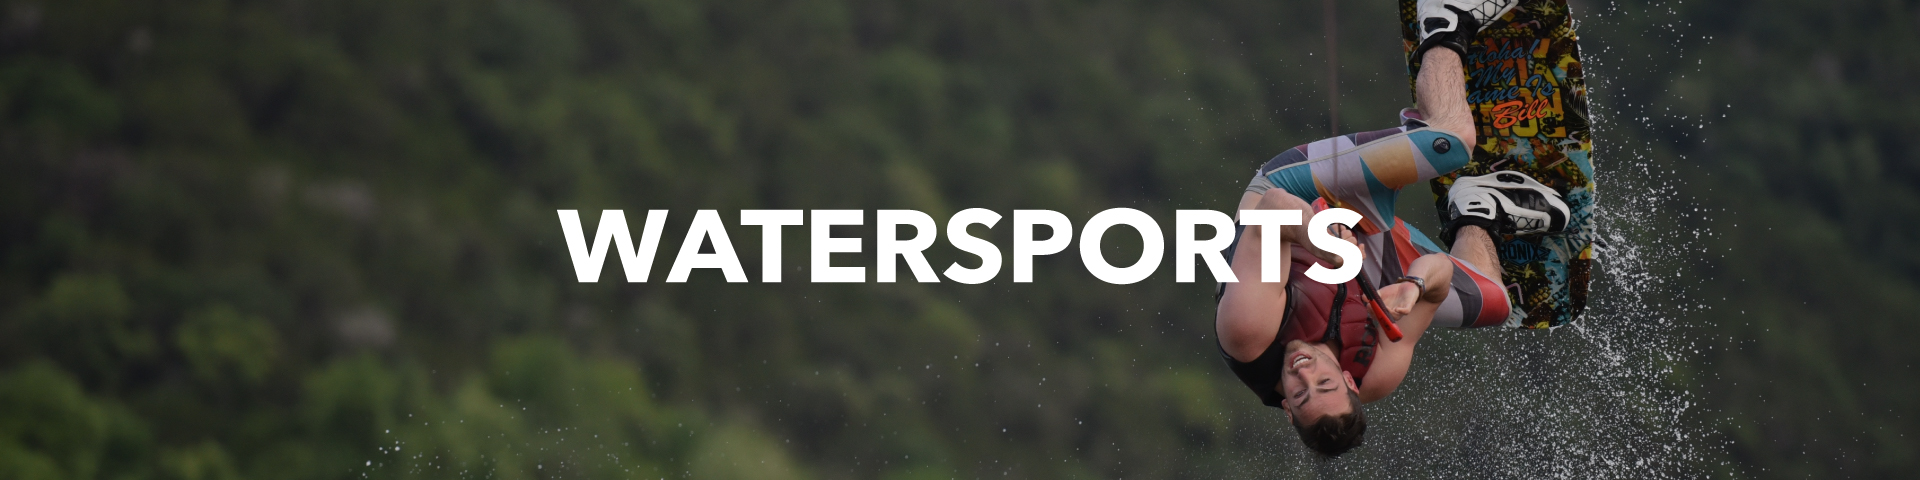 Watersports Department